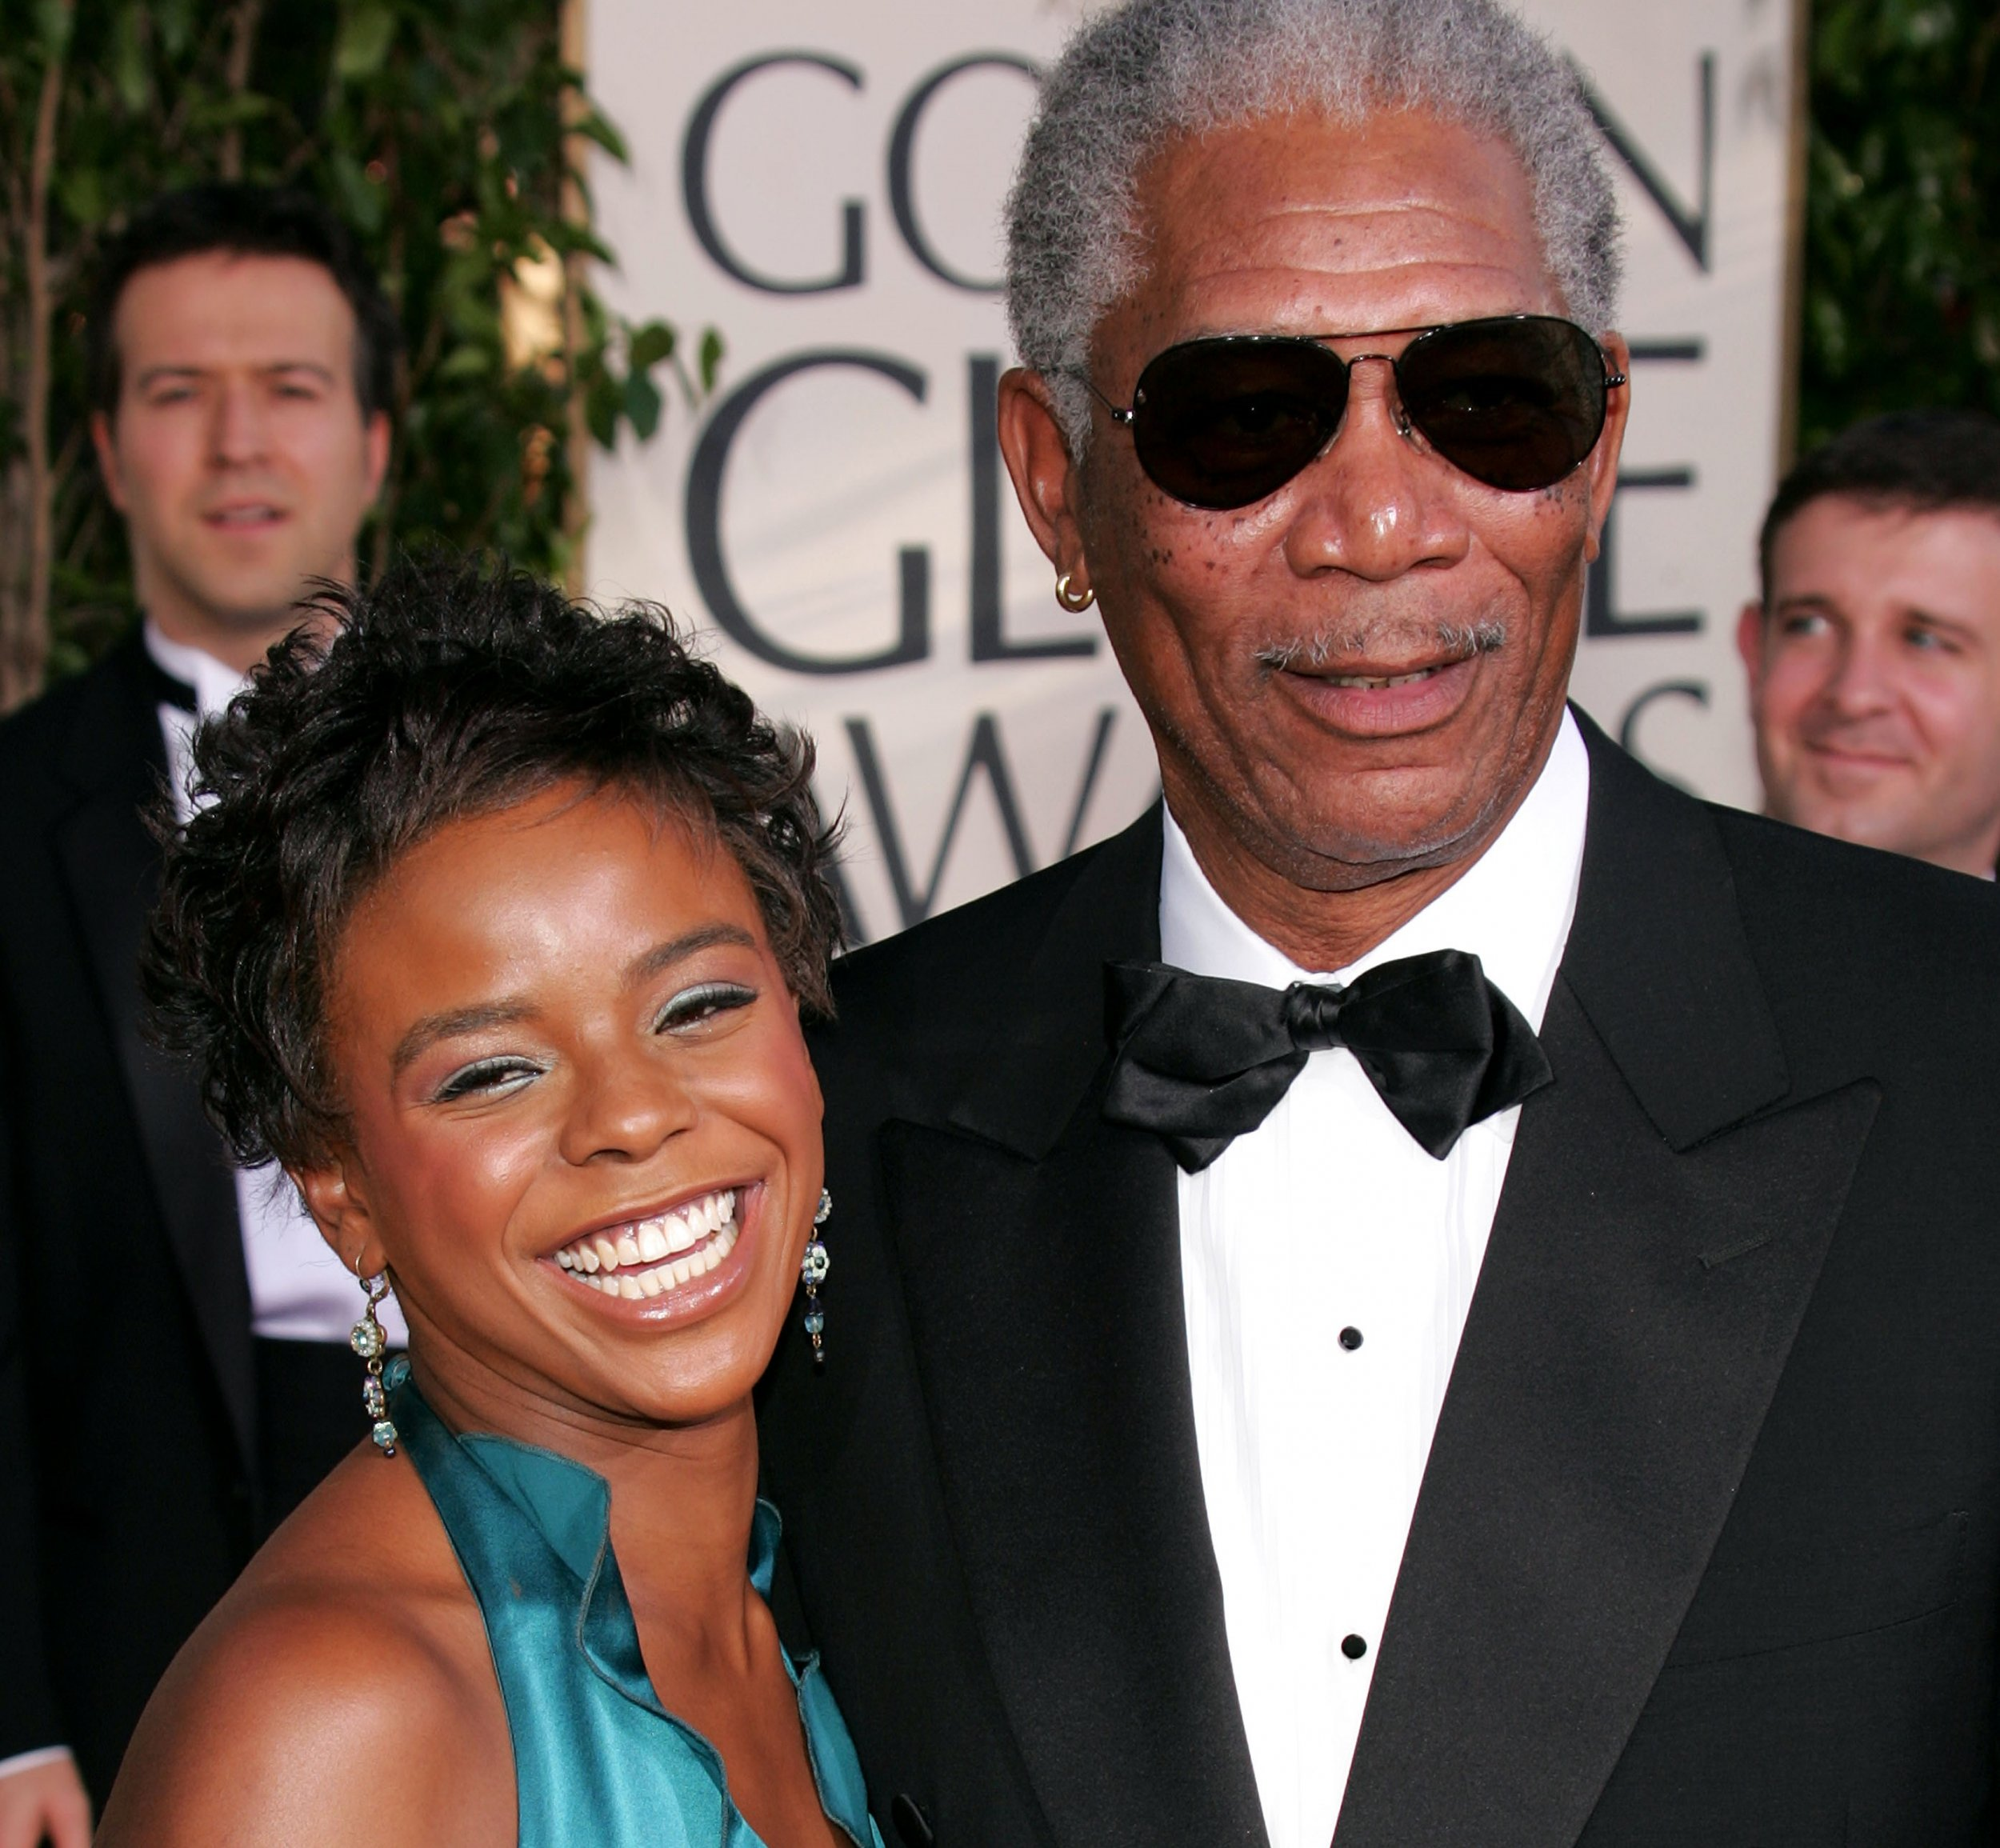 Morgan Freeman, Granddaughter, E'Dena Hines, Murder, Stabbing